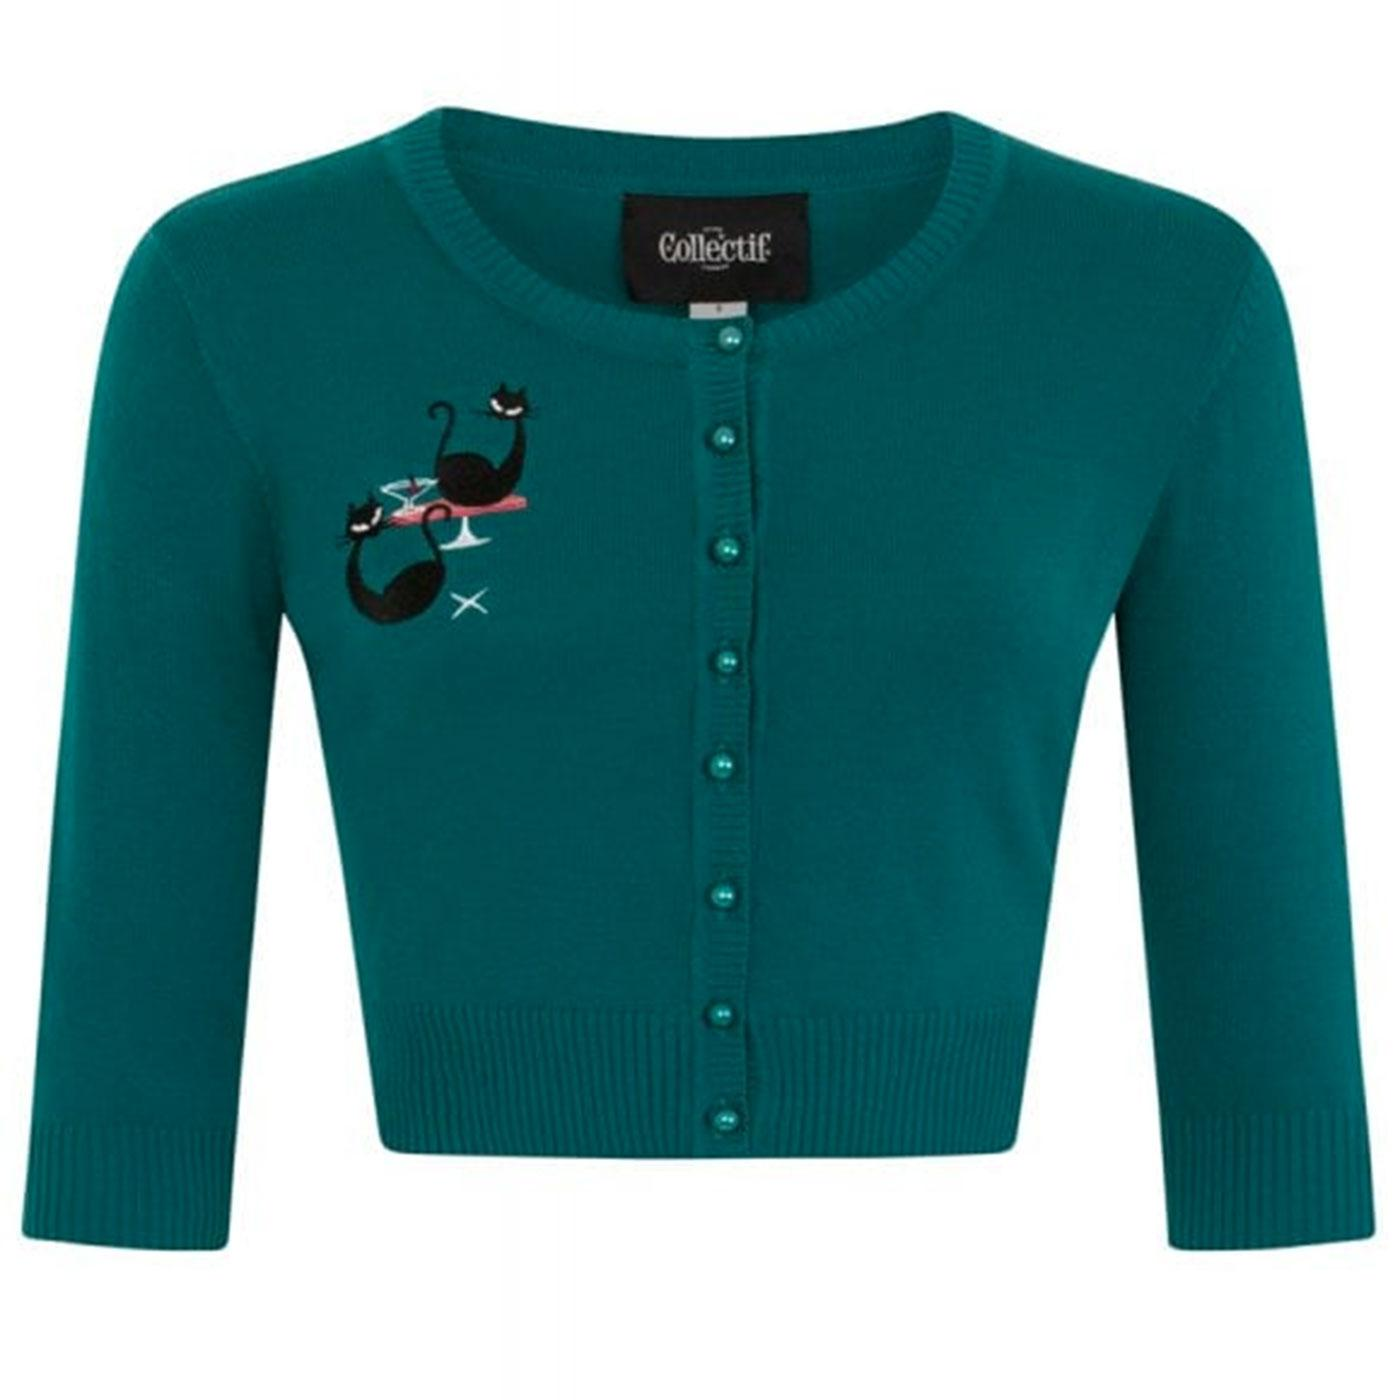 Lucy Atomic Cats COLLECTIF Cropped Cardigan Teal